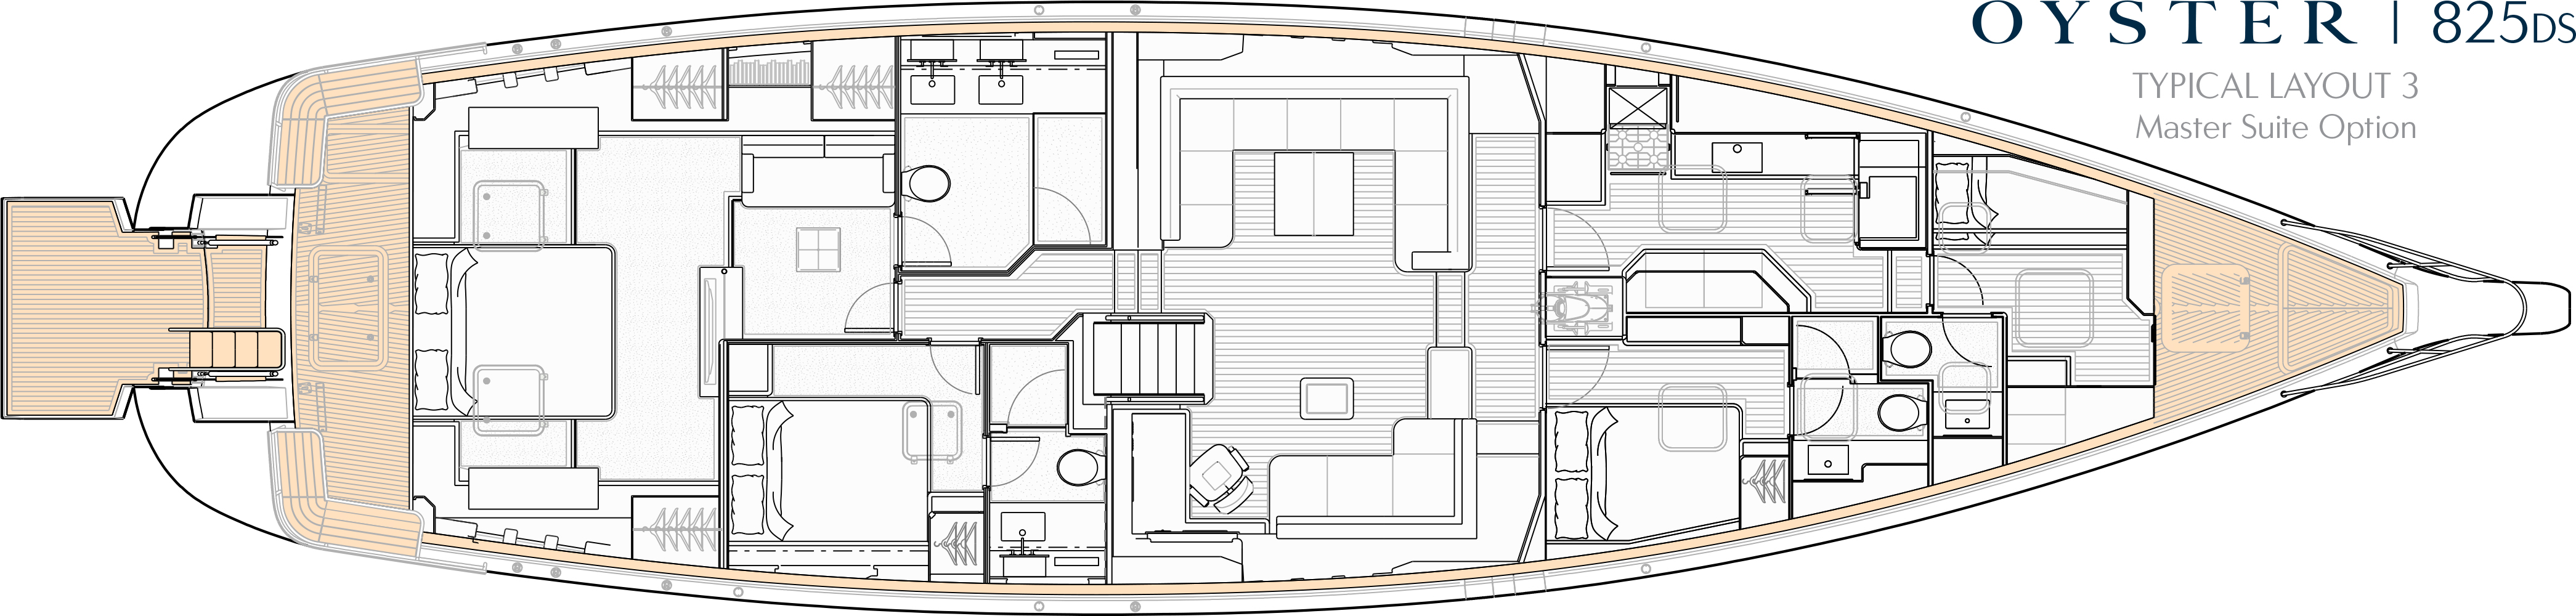 Oyster Marine 825 - oysteryachts-yachts-825_ds_typical_layout_3-2.jpg